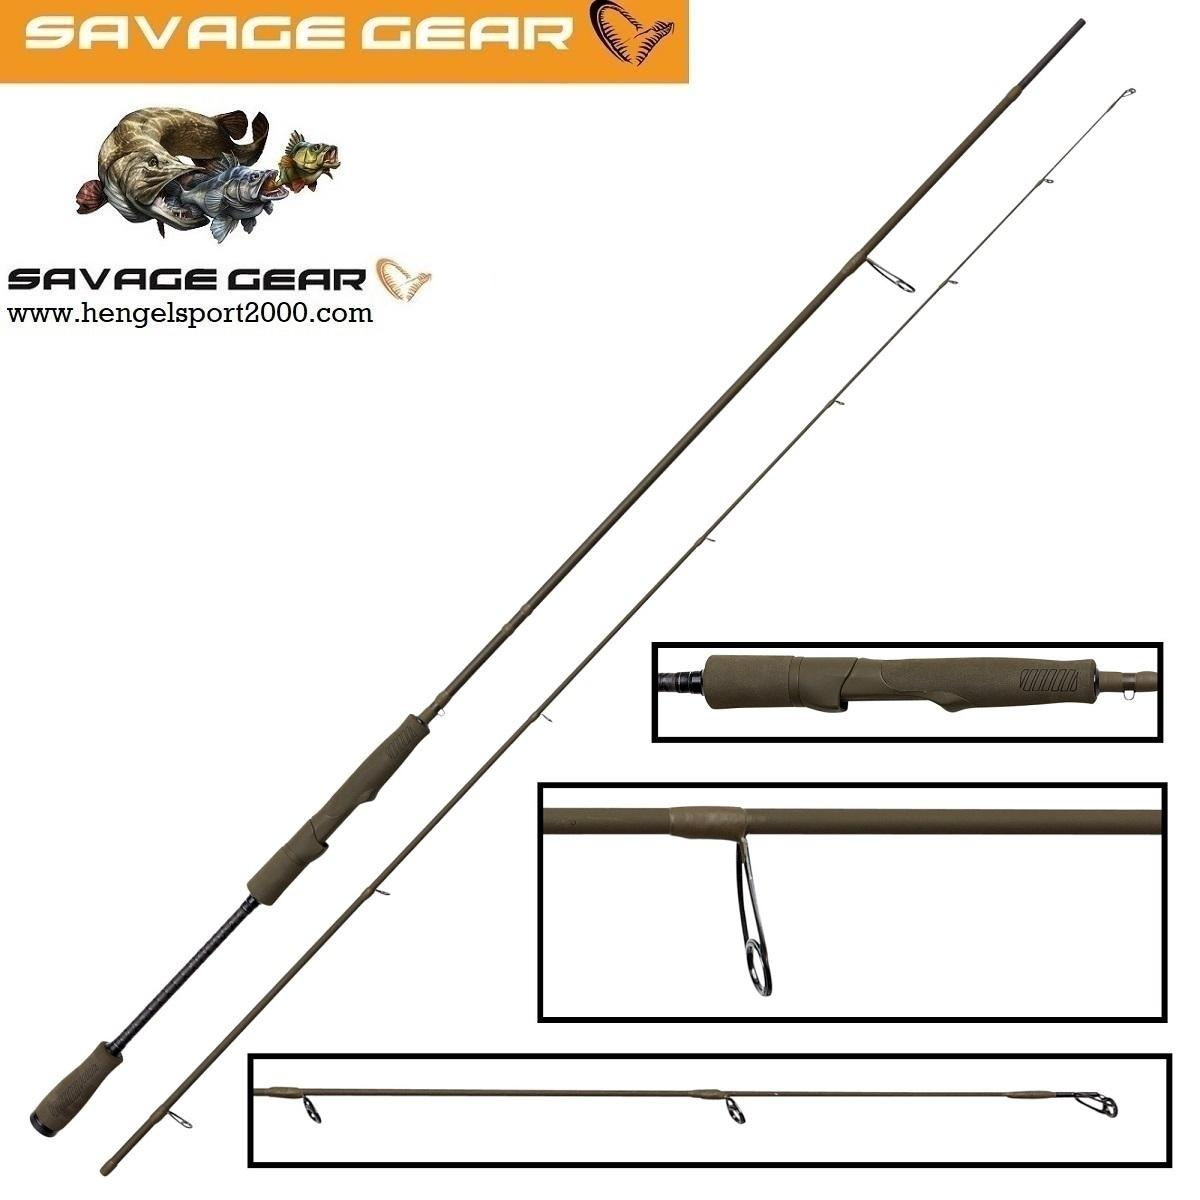 Savage Gear SG4 Light Game Rod 221 cm 3 - 10 gram